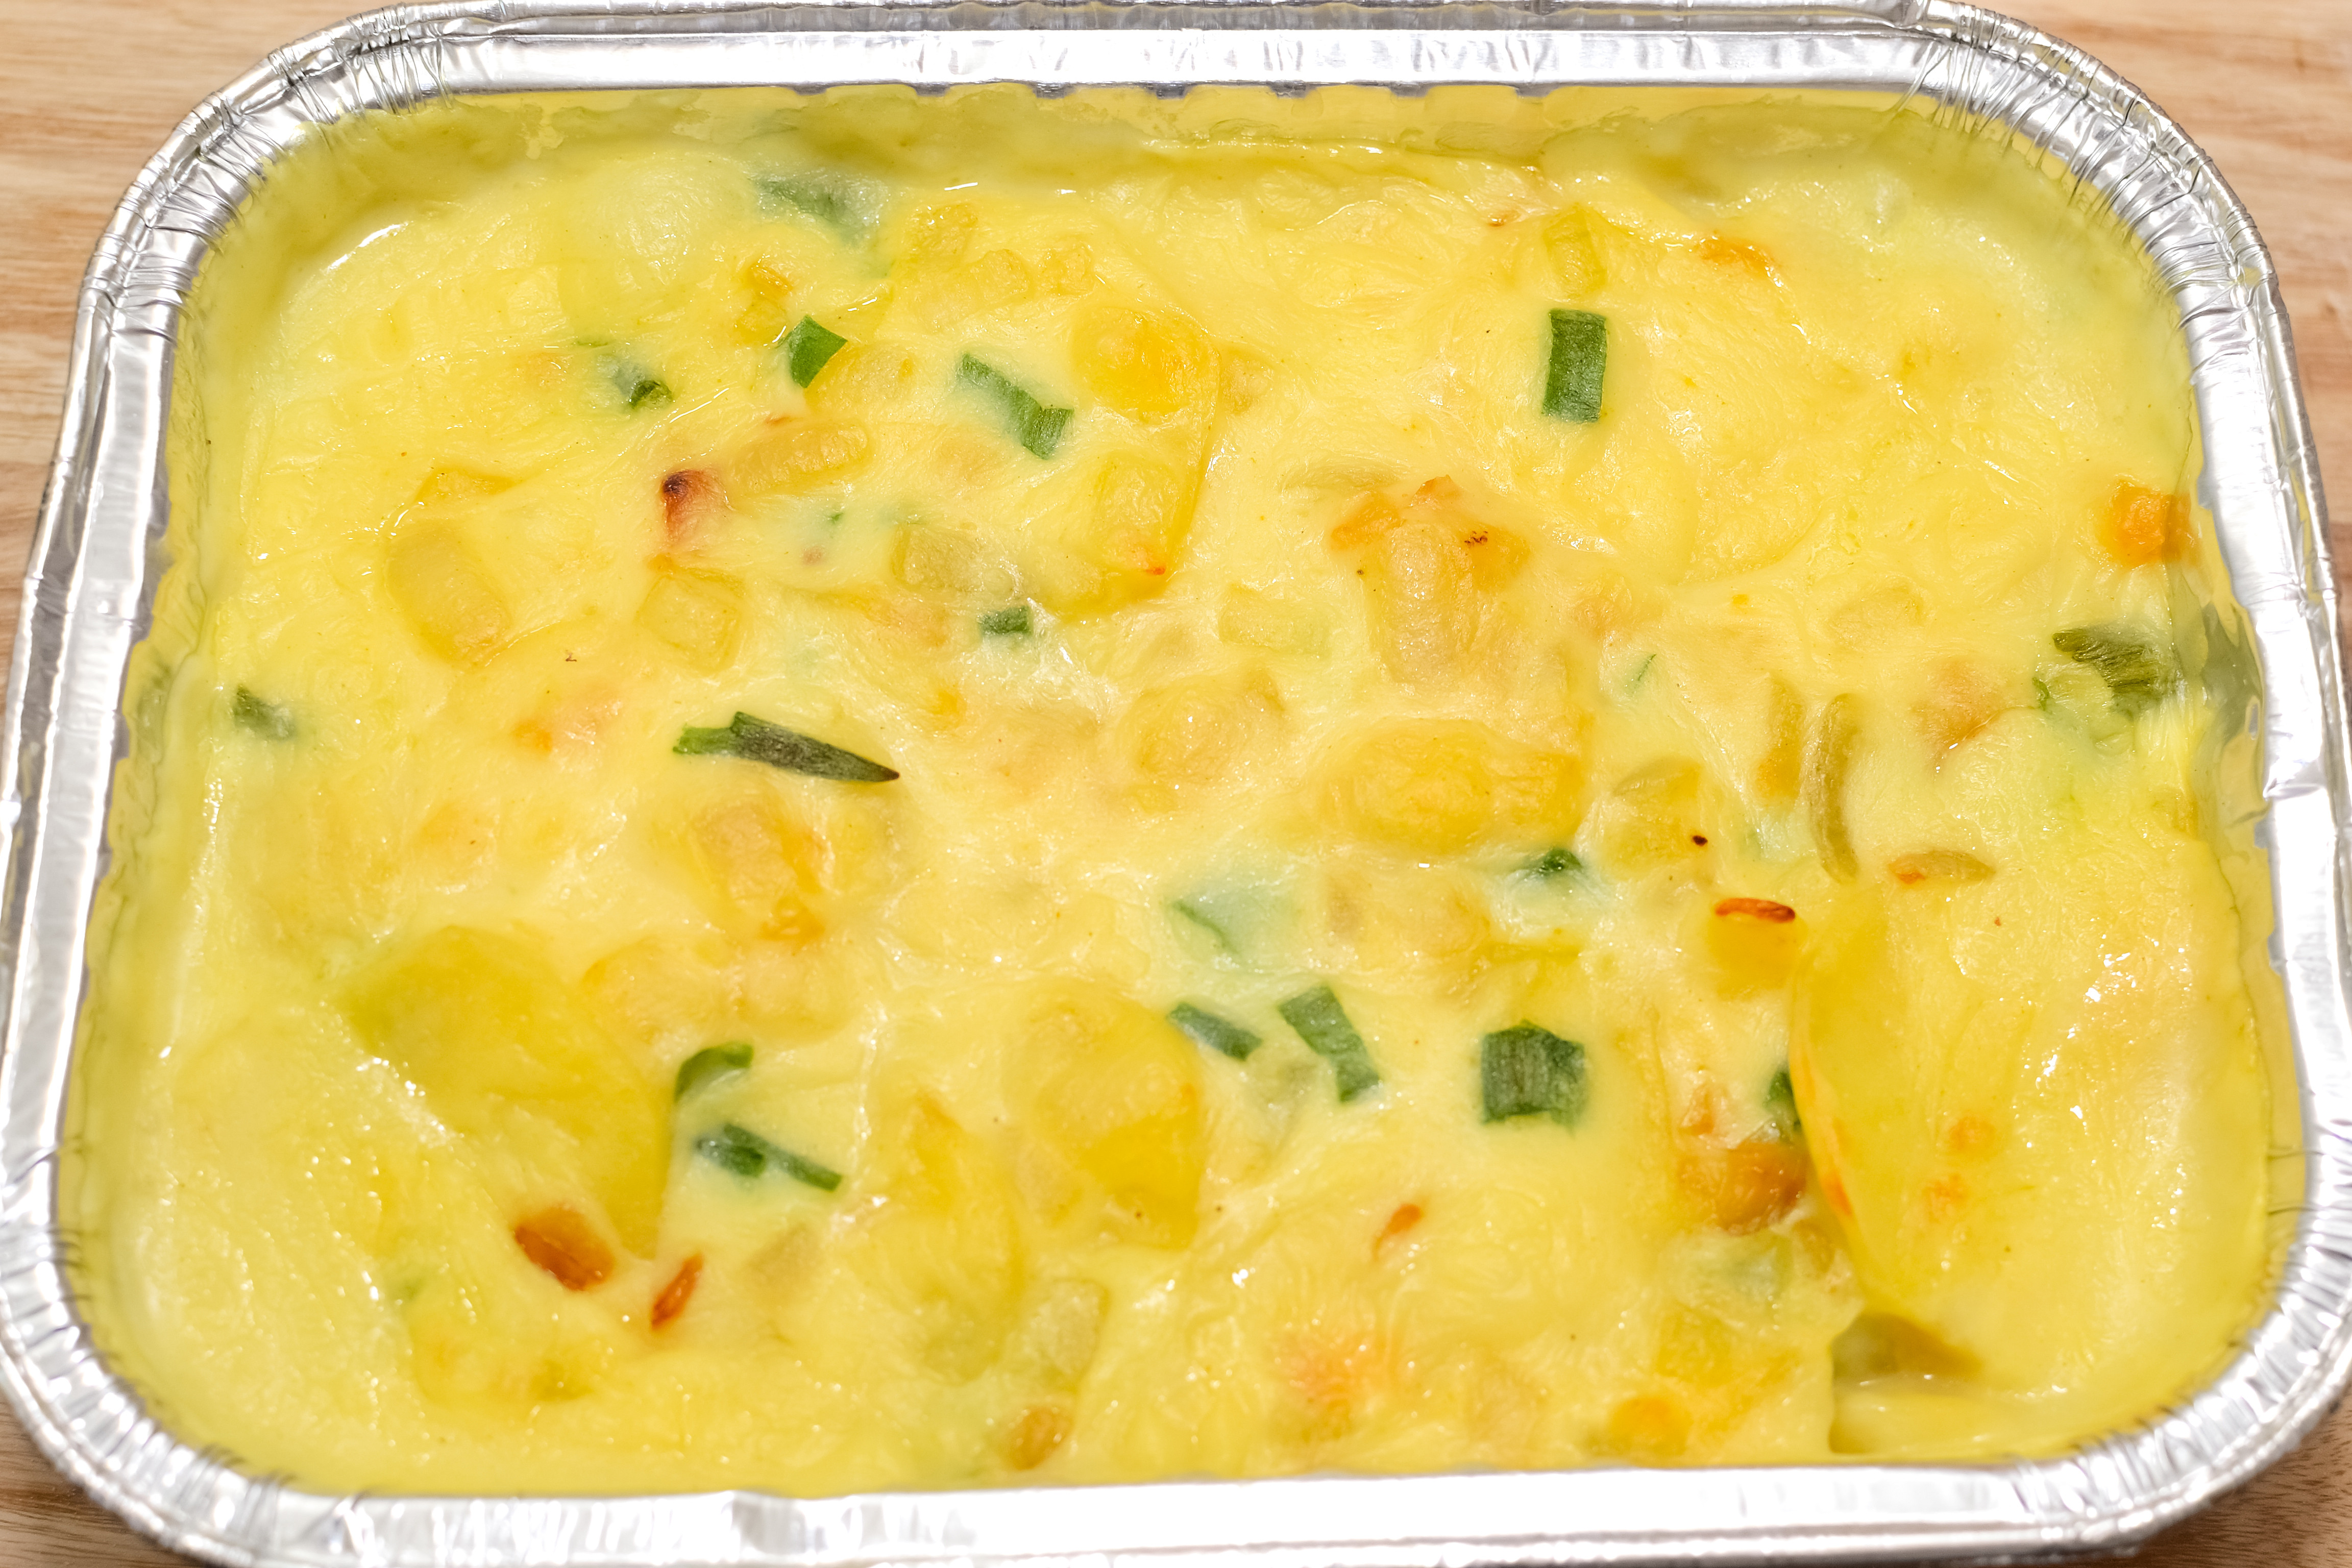 How To Make Scalloped Potatoes  How to Make Vegan Scalloped Potatoes 7 Steps with